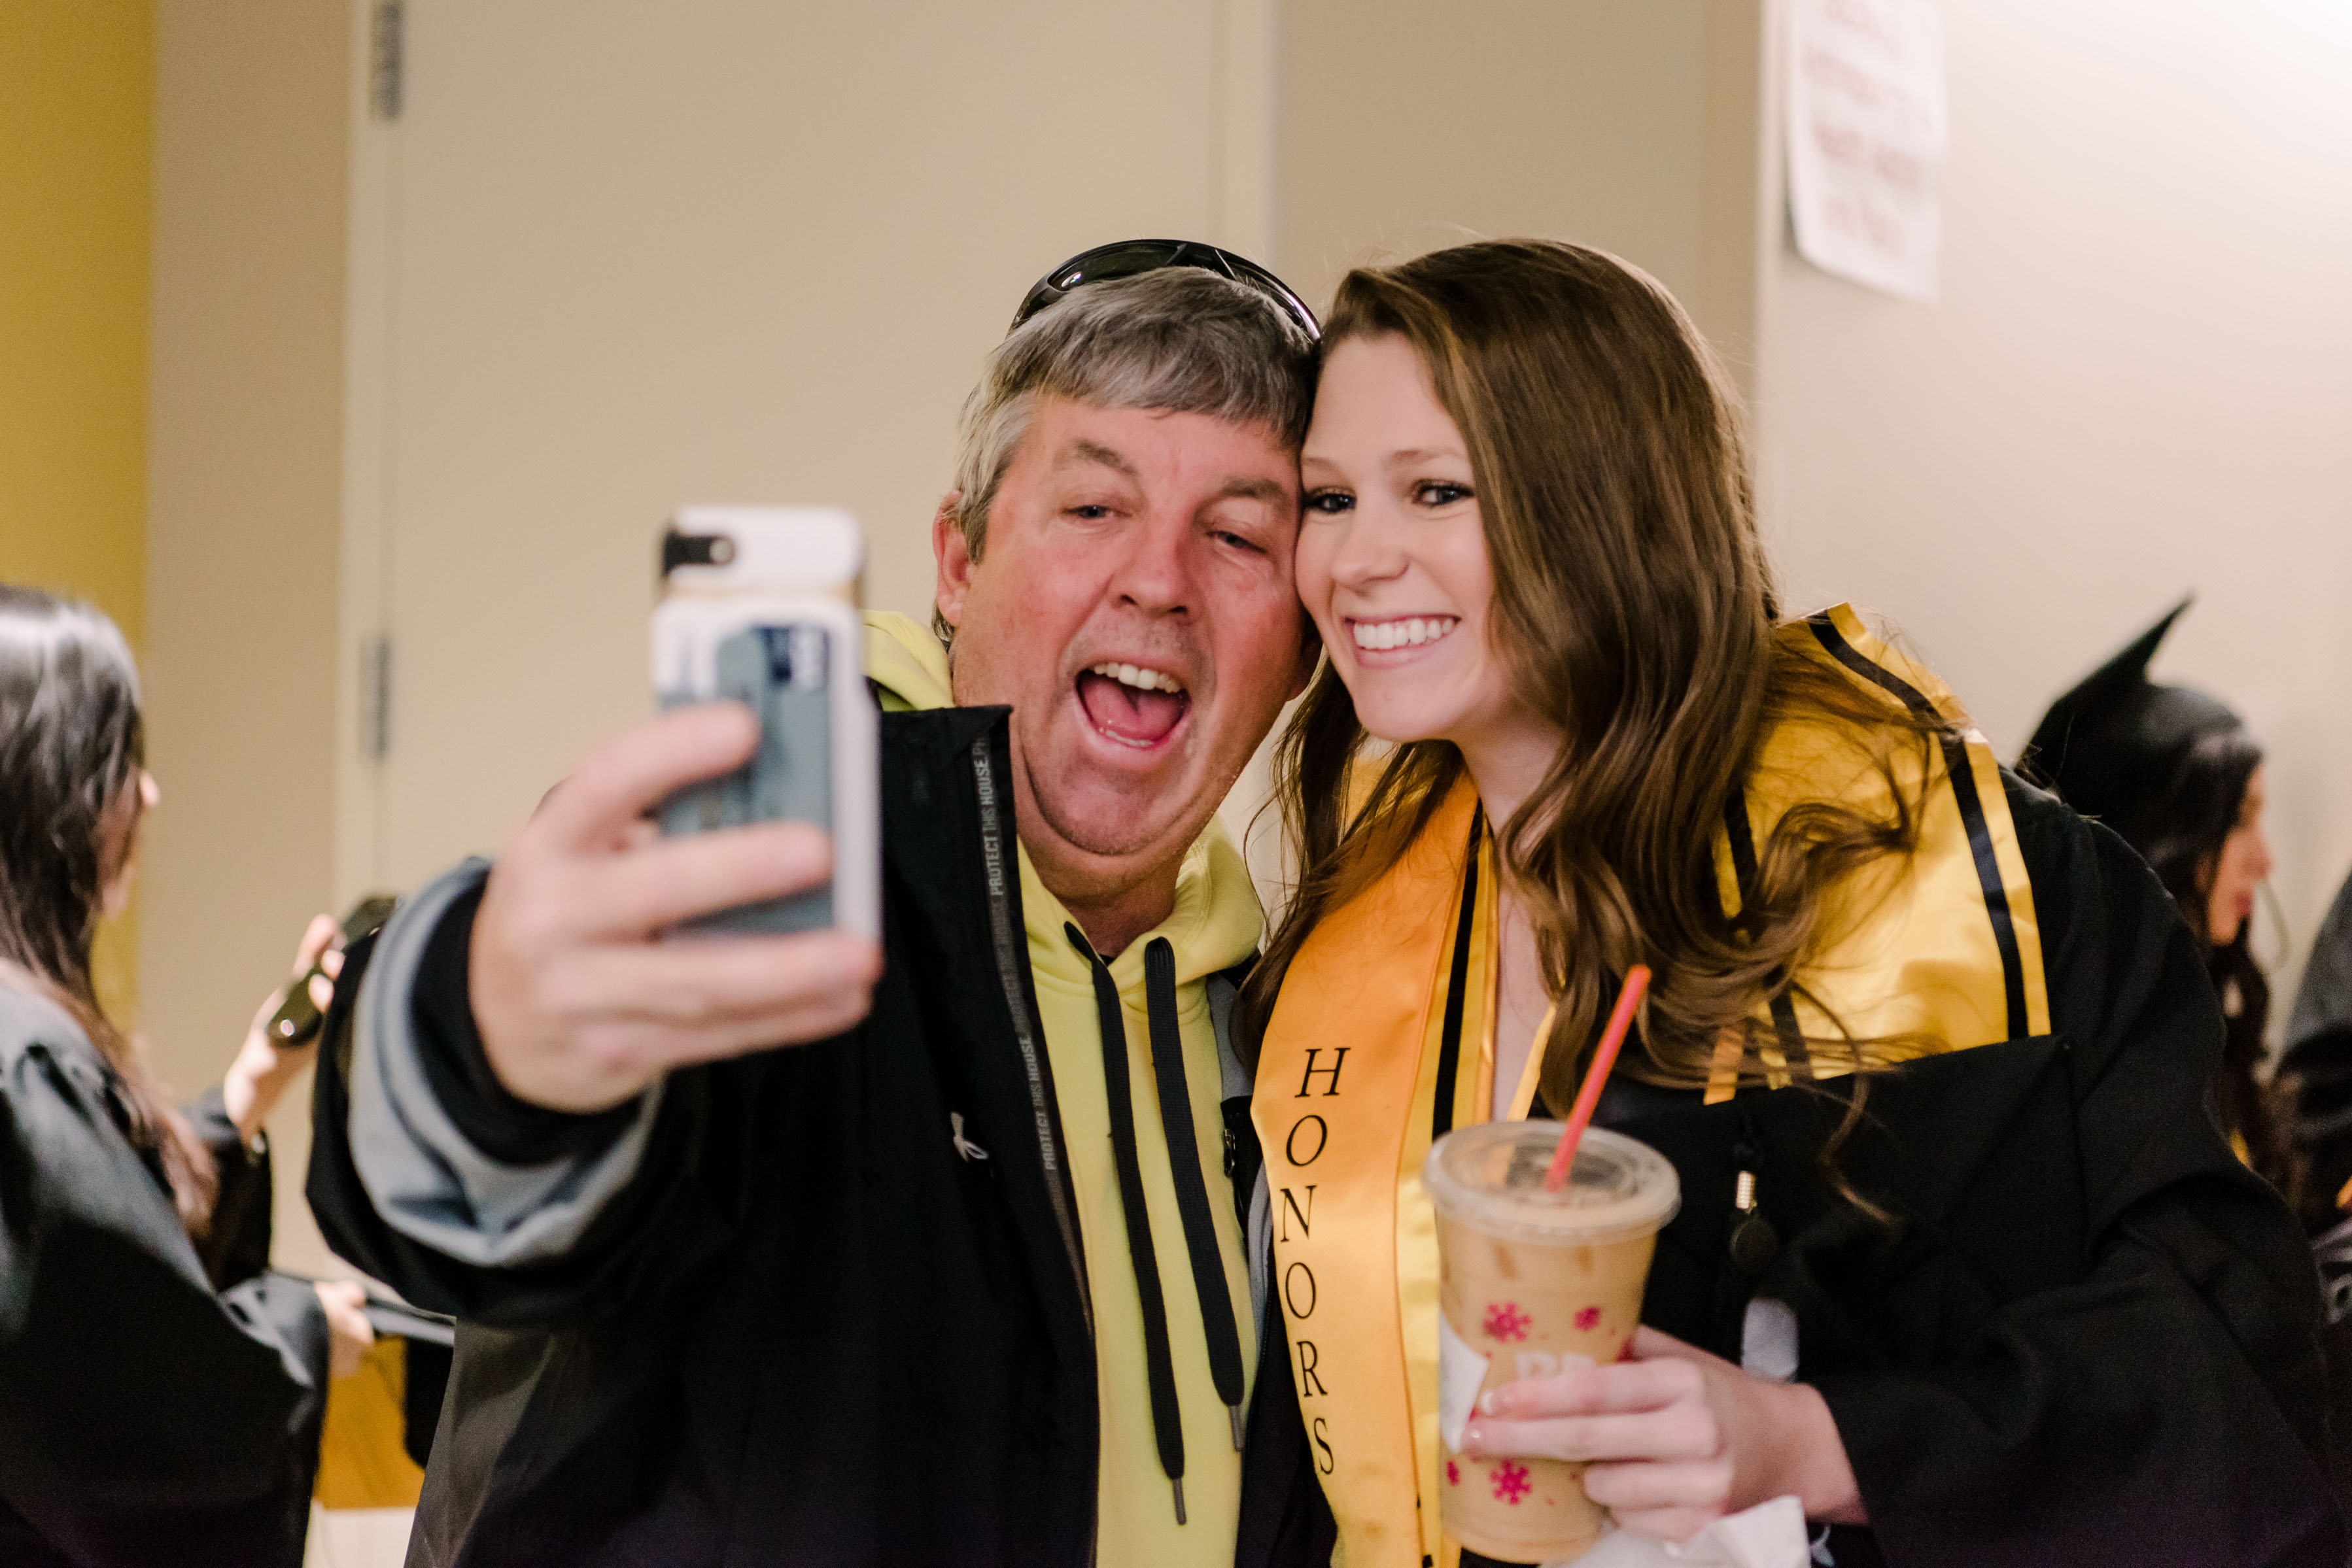 man and graduating student take a selfie together